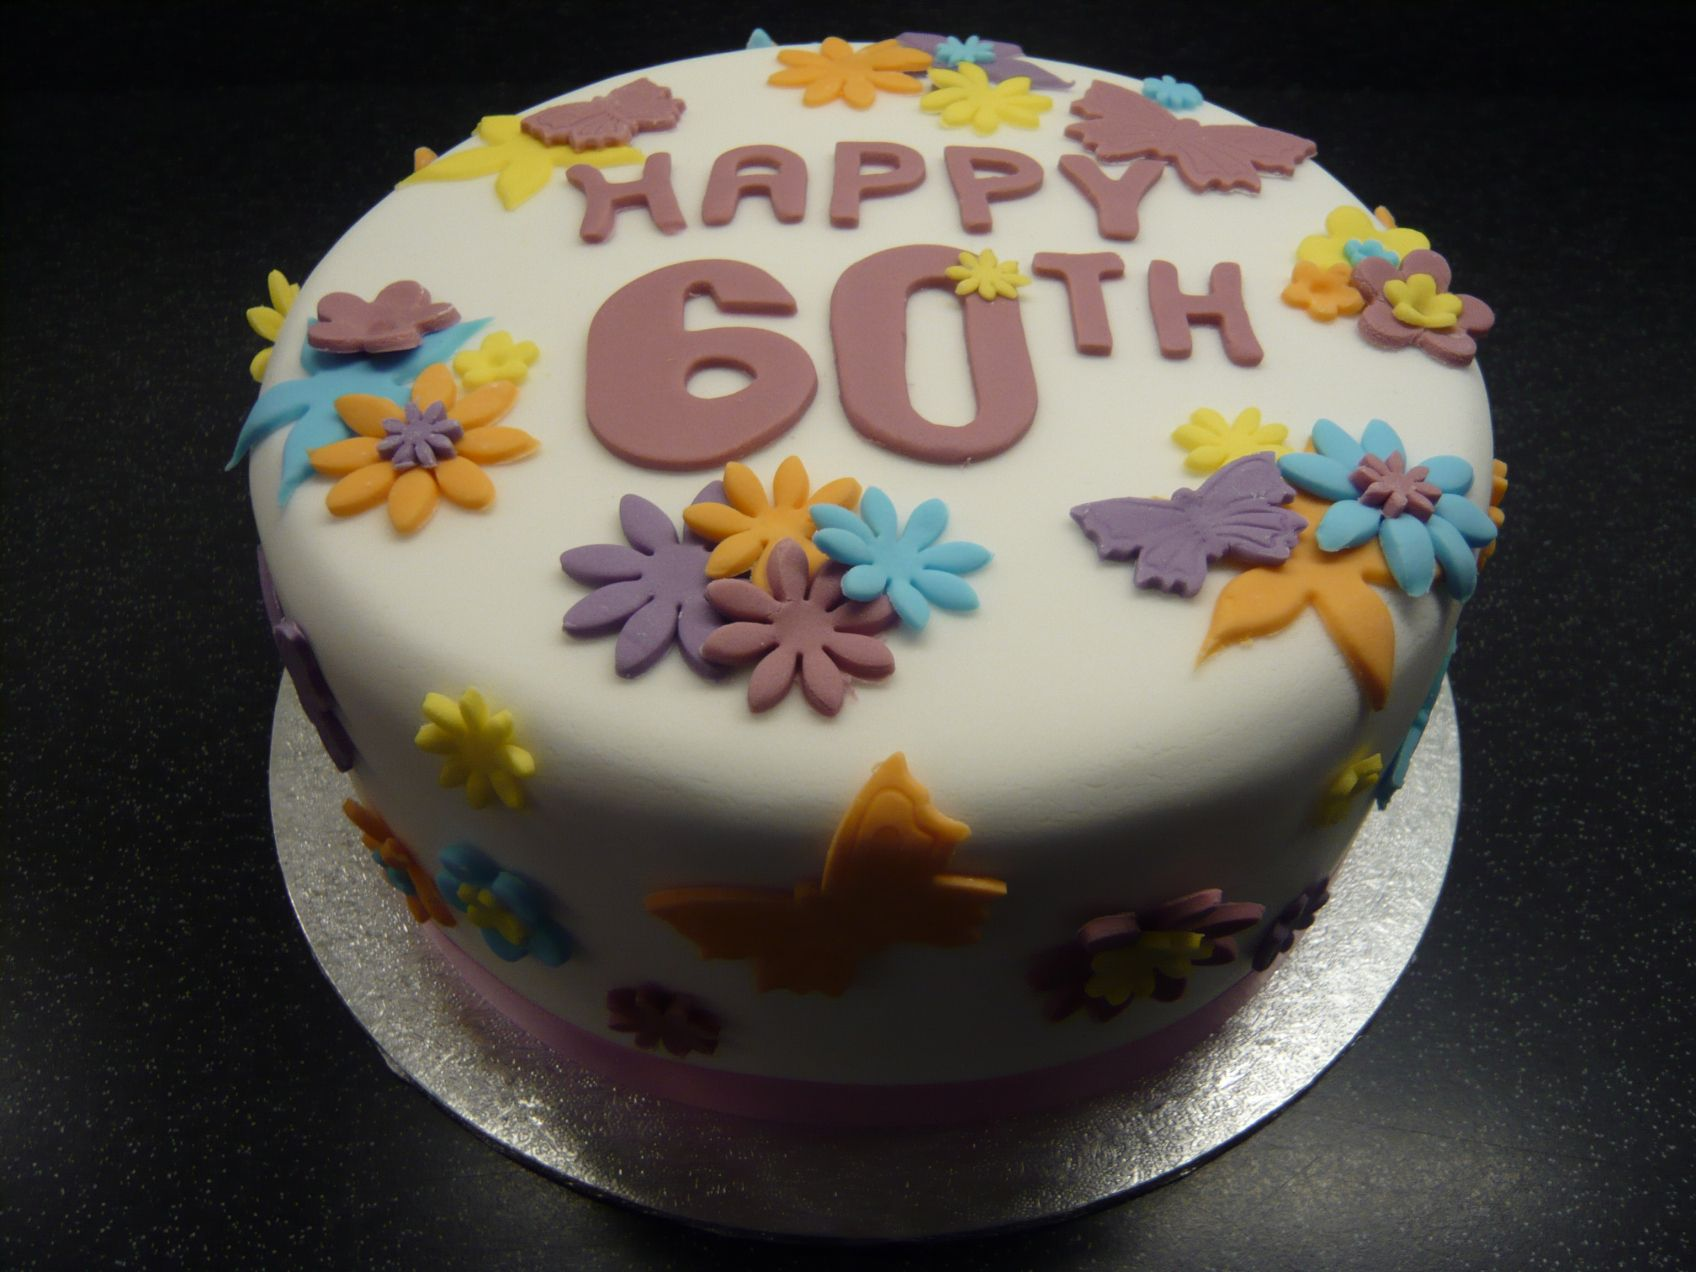 Birthday Cake 60 Year Old Lady 60th Cakes For Women Happy Woman Pictures Of